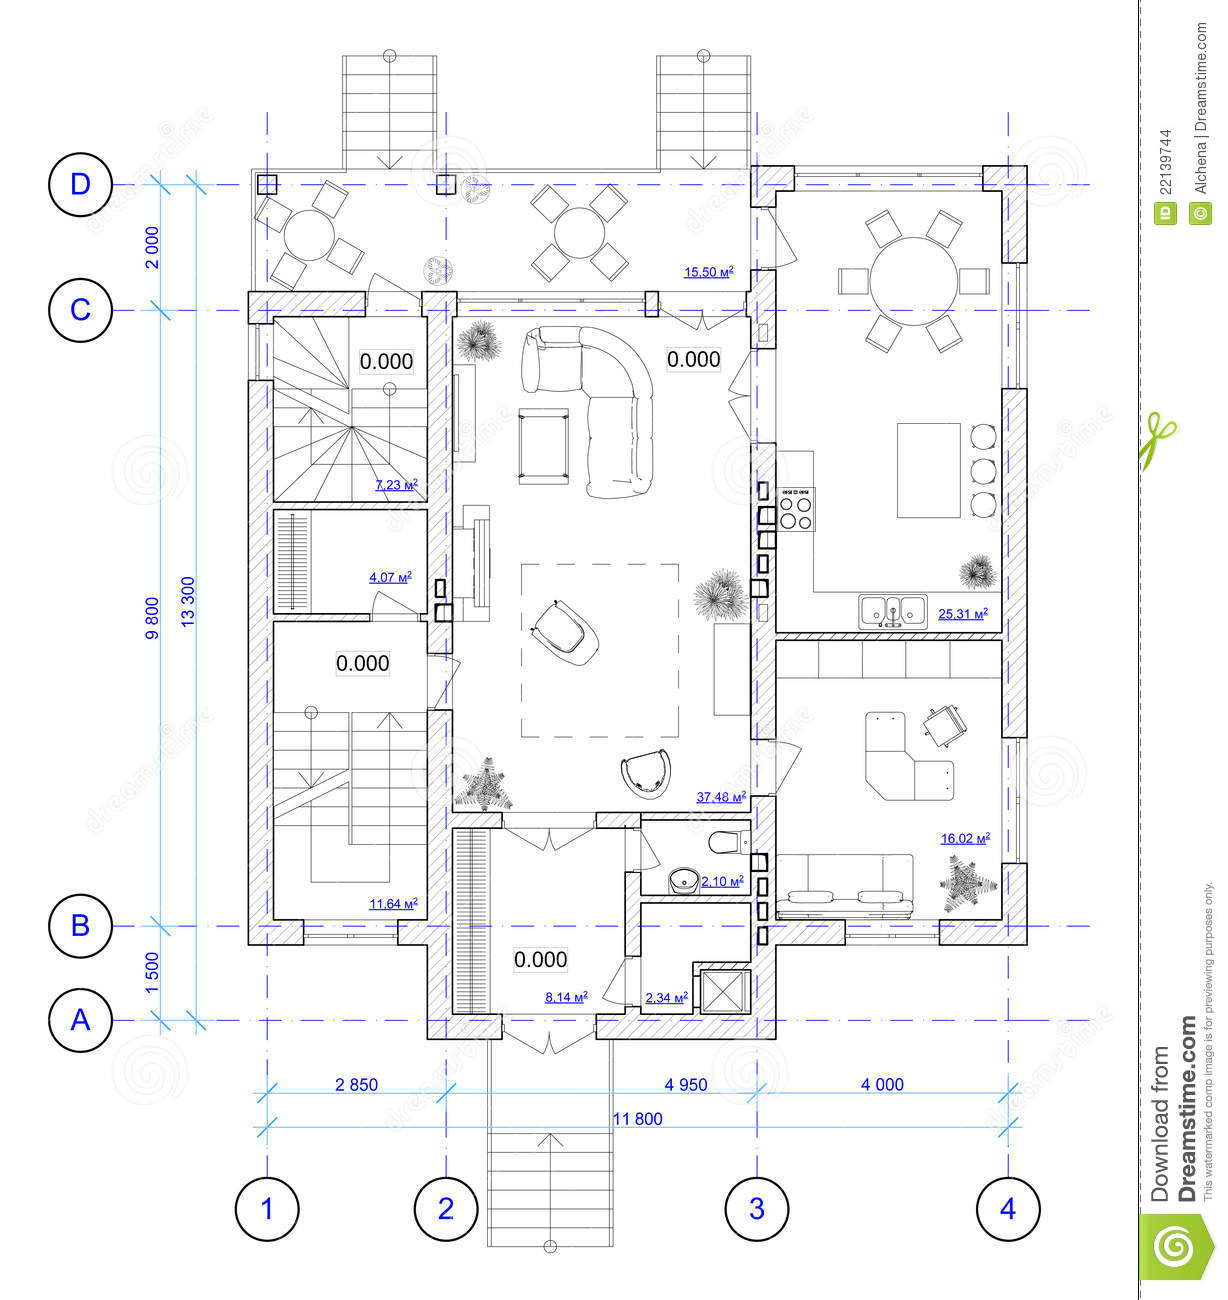 Architectural Plan Of 1 Floor Of House Stock Images  Image: 22139744